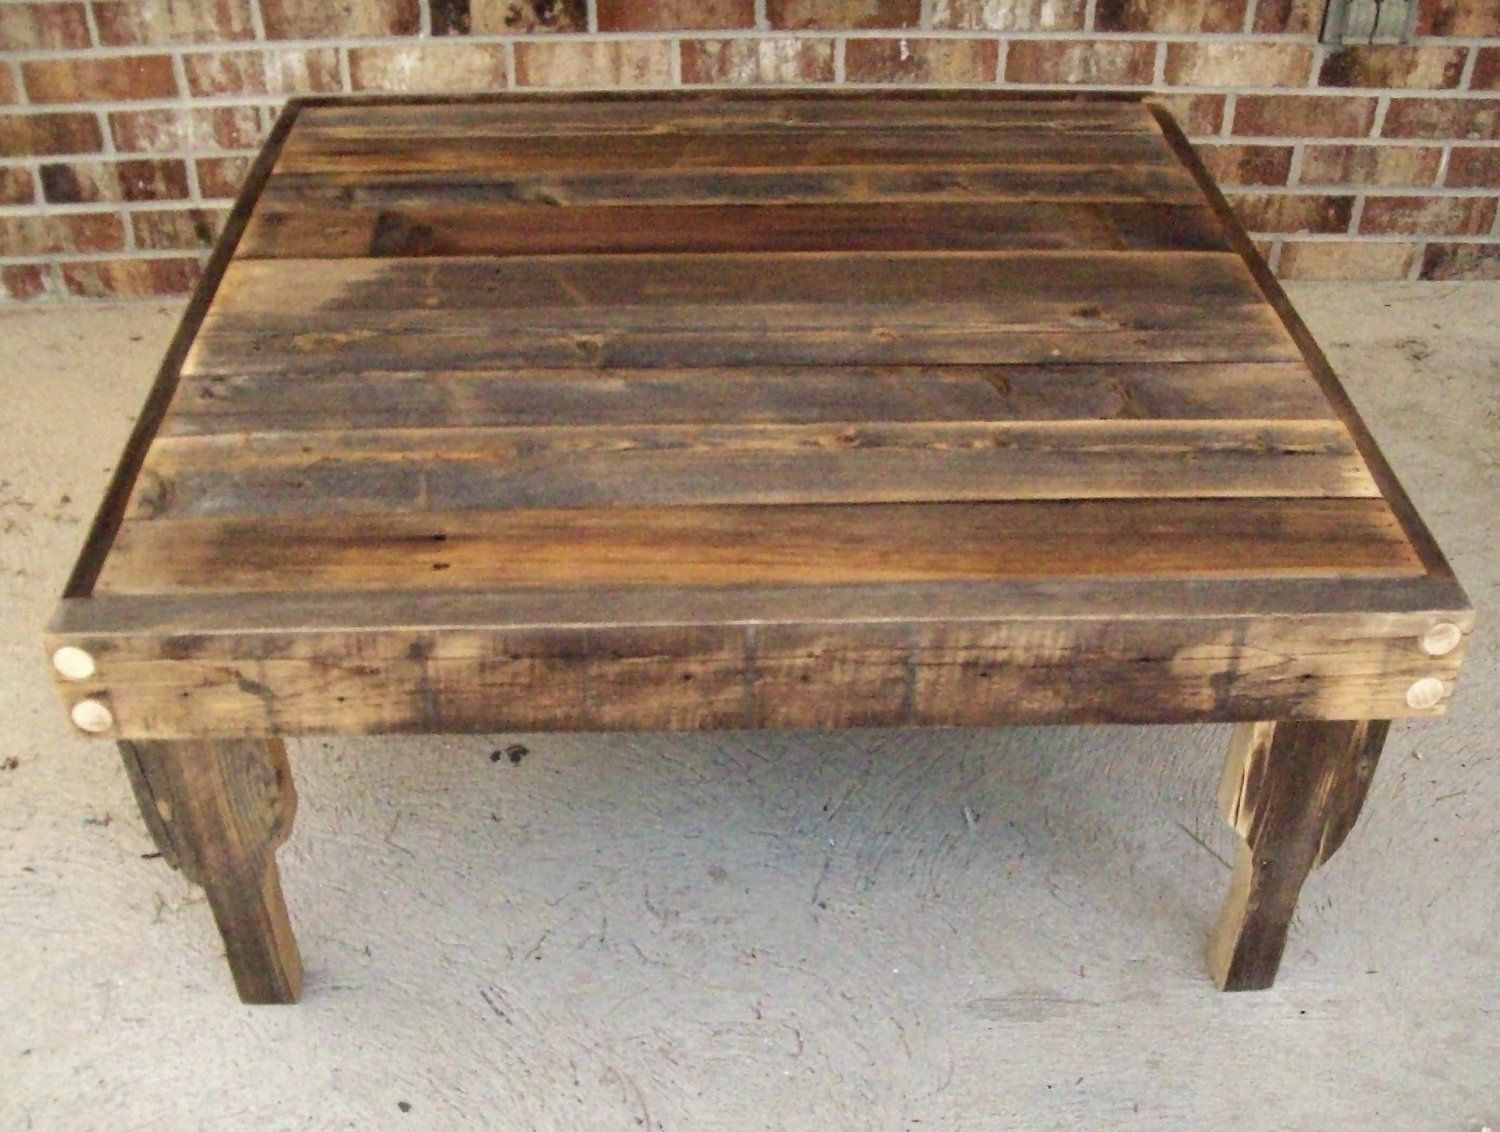 Oversized Wooden Coffee Tables | http://therapybychance.com | Pinterest